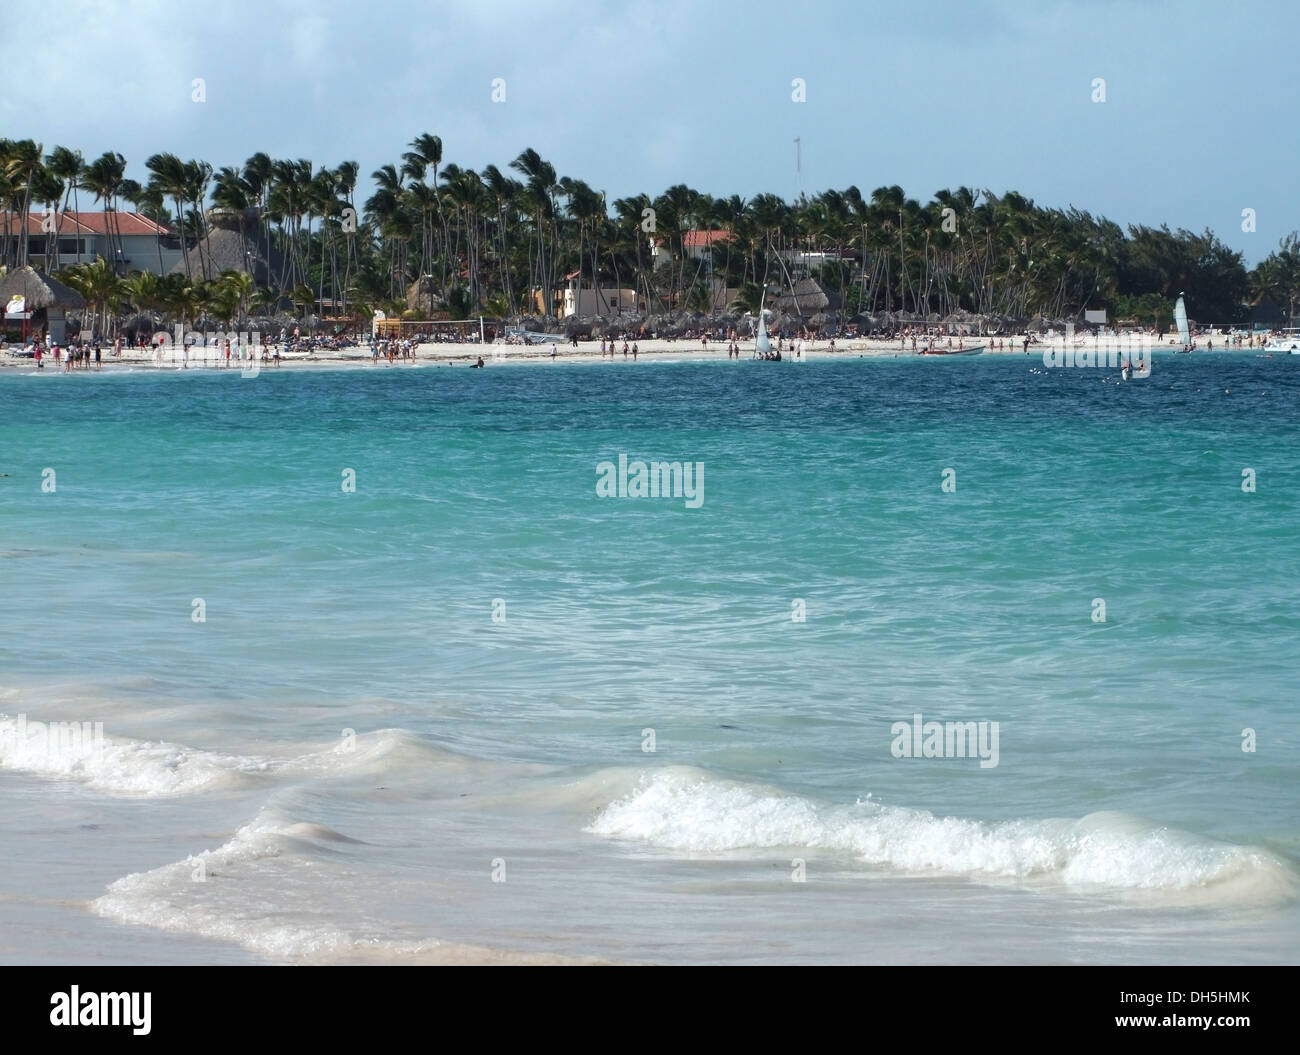 beach scenery at the Dominican Republic - Stock Image